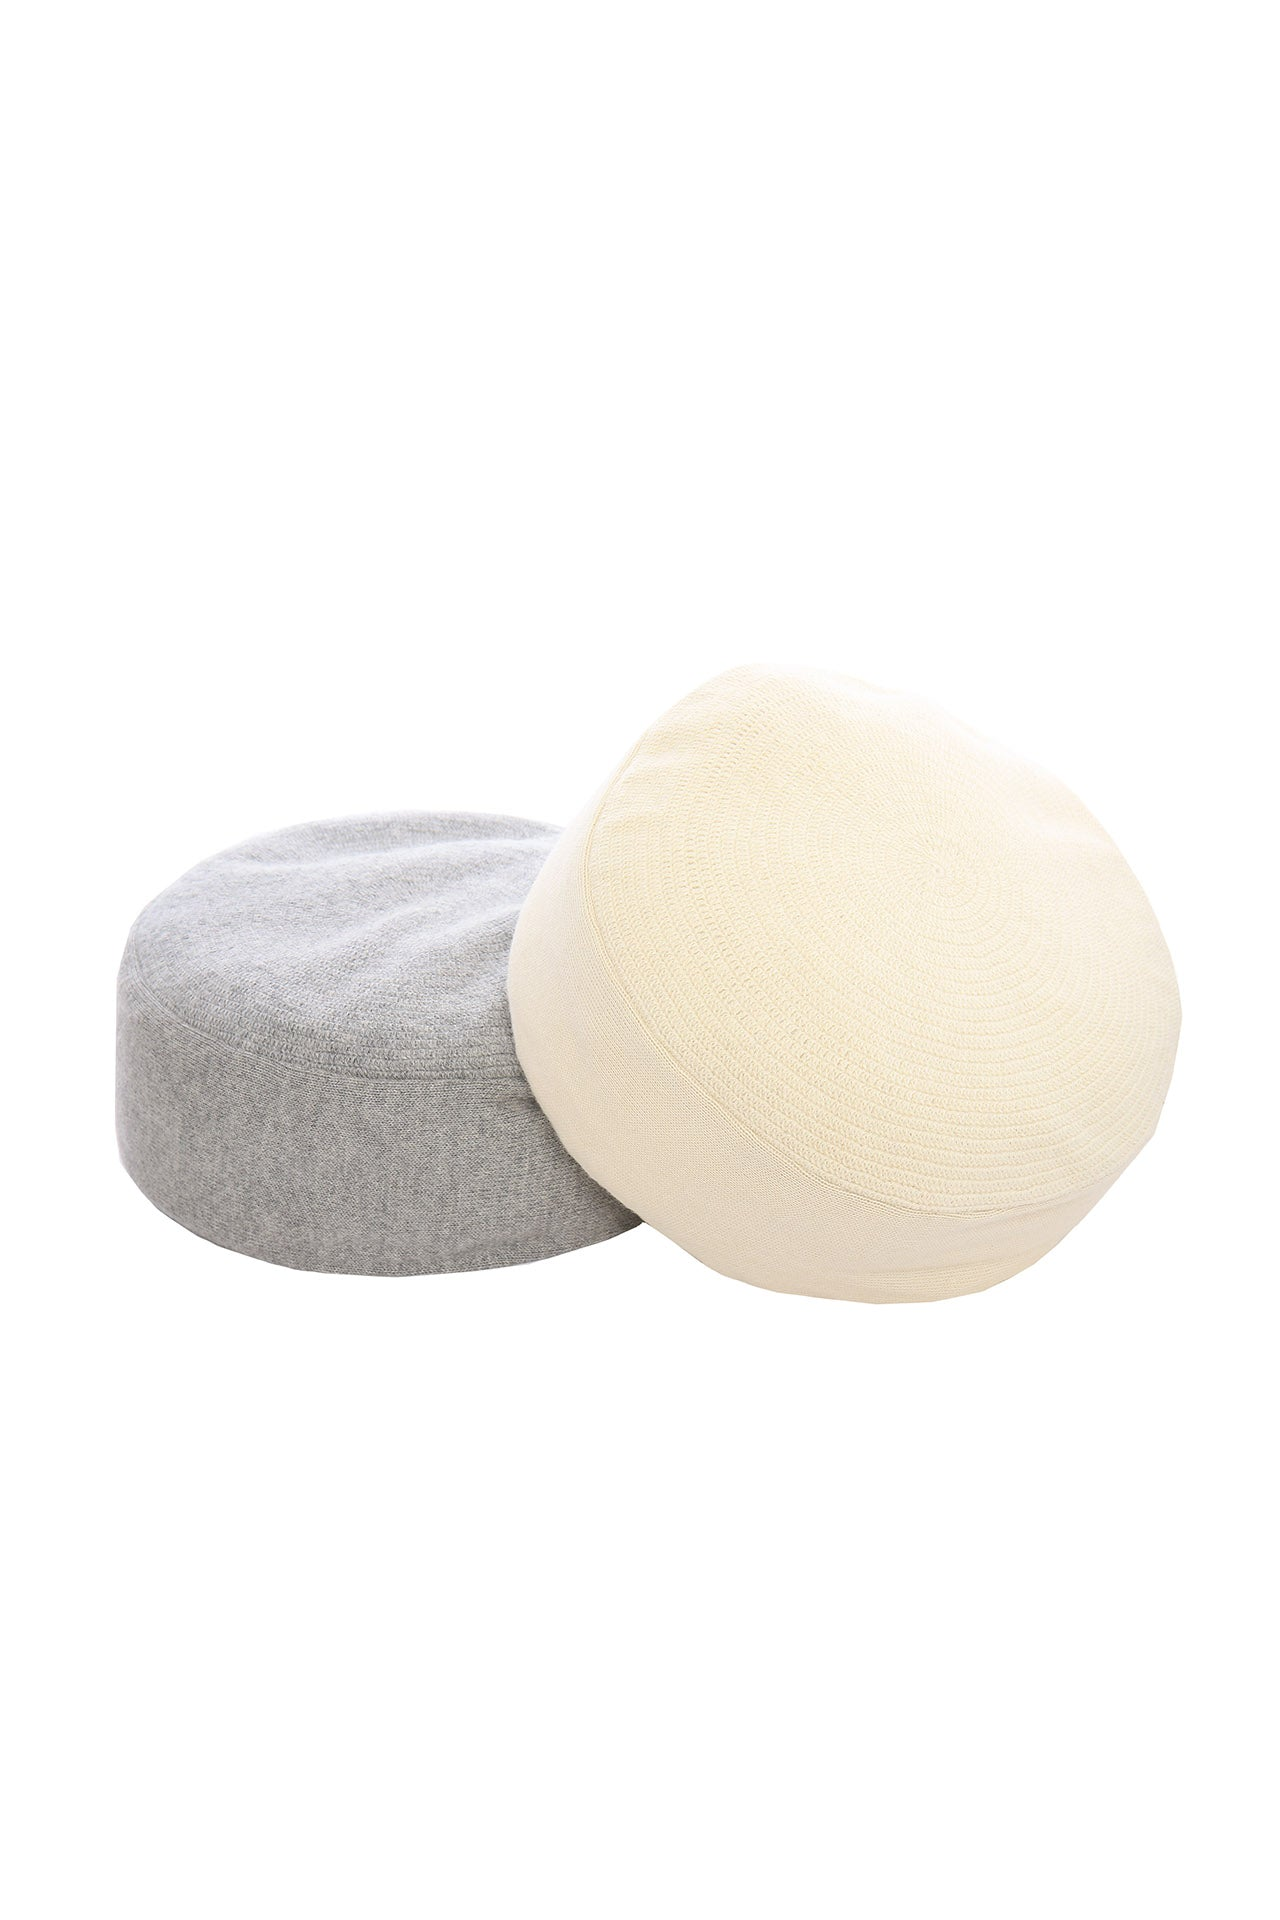 Paya Meditation Cushion